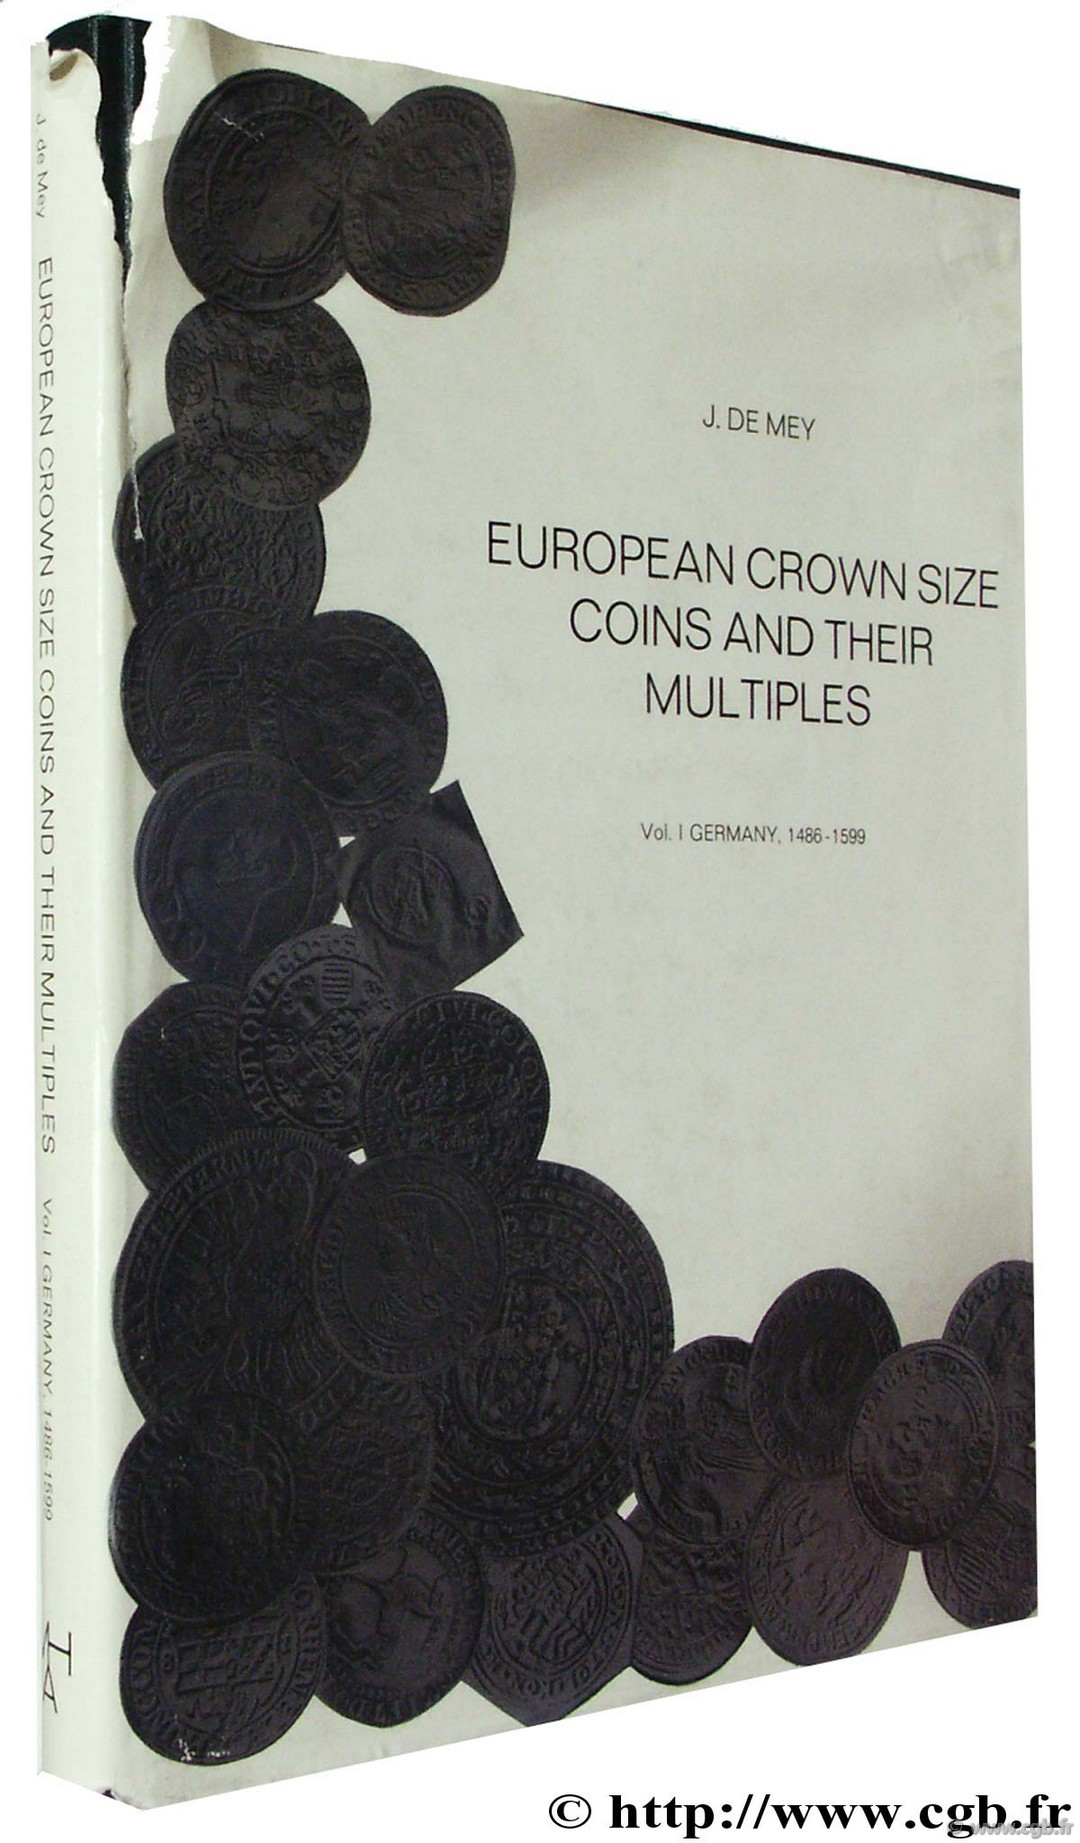 European Crown Size Coins and their Multiples MEY J. de